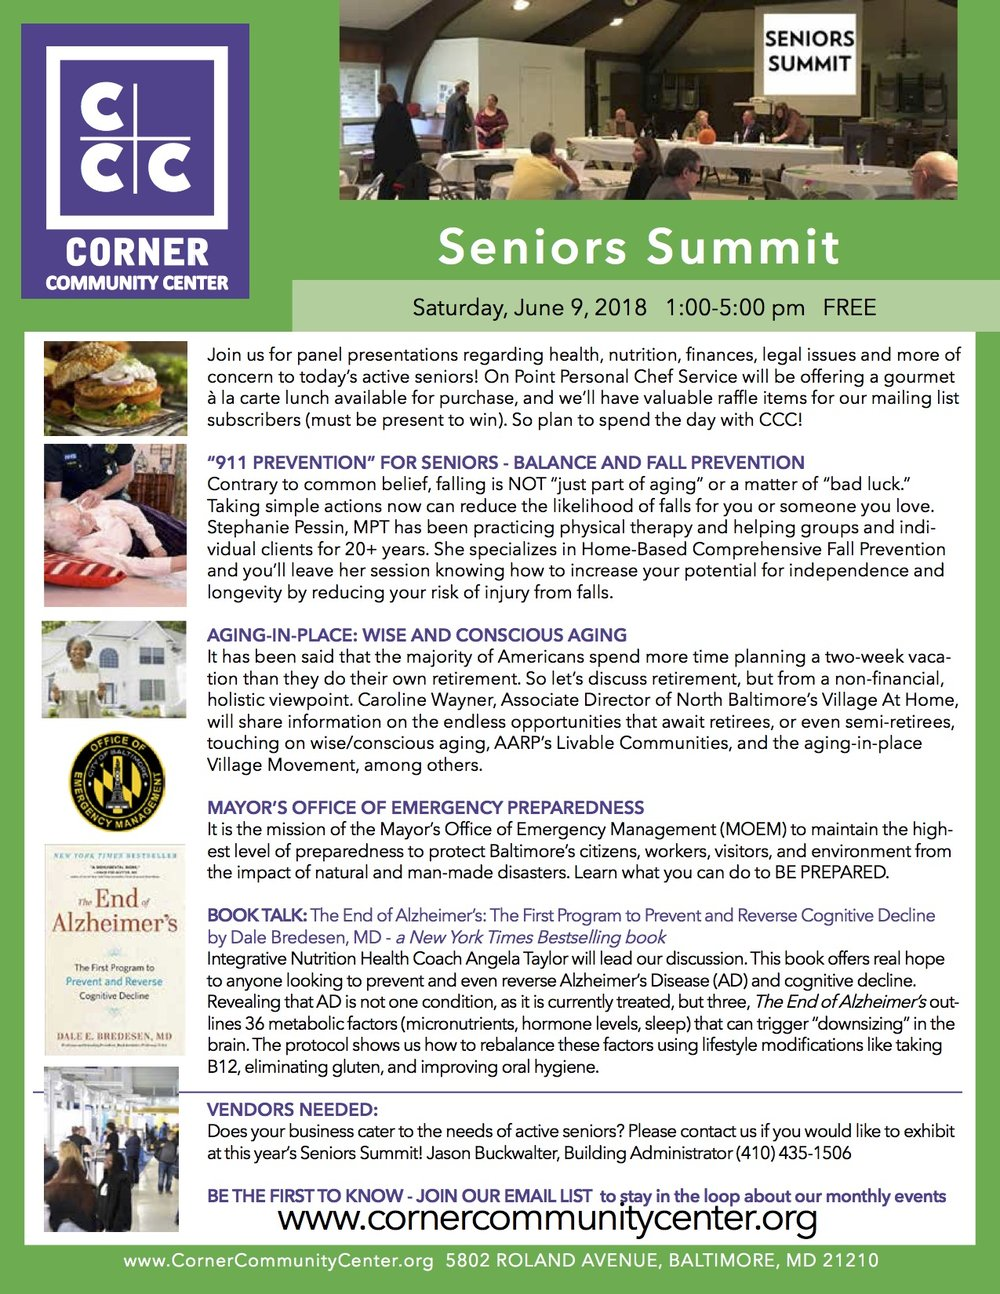 Seniors Summit Flyer.jpg